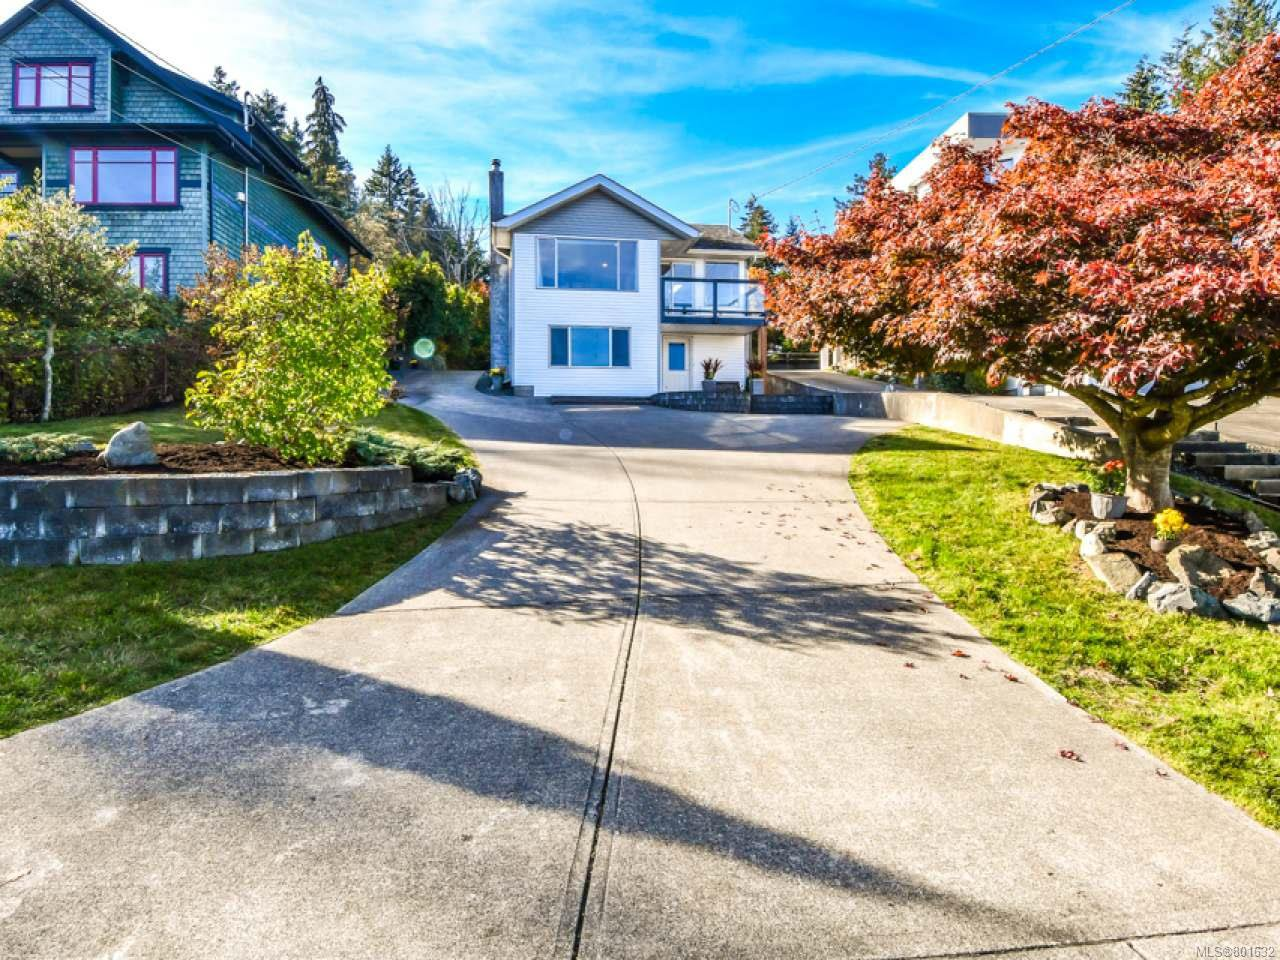 Main Photo: 520 Thulin St in CAMPBELL RIVER: CR Campbell River Central House for sale (Campbell River)  : MLS®# 801632